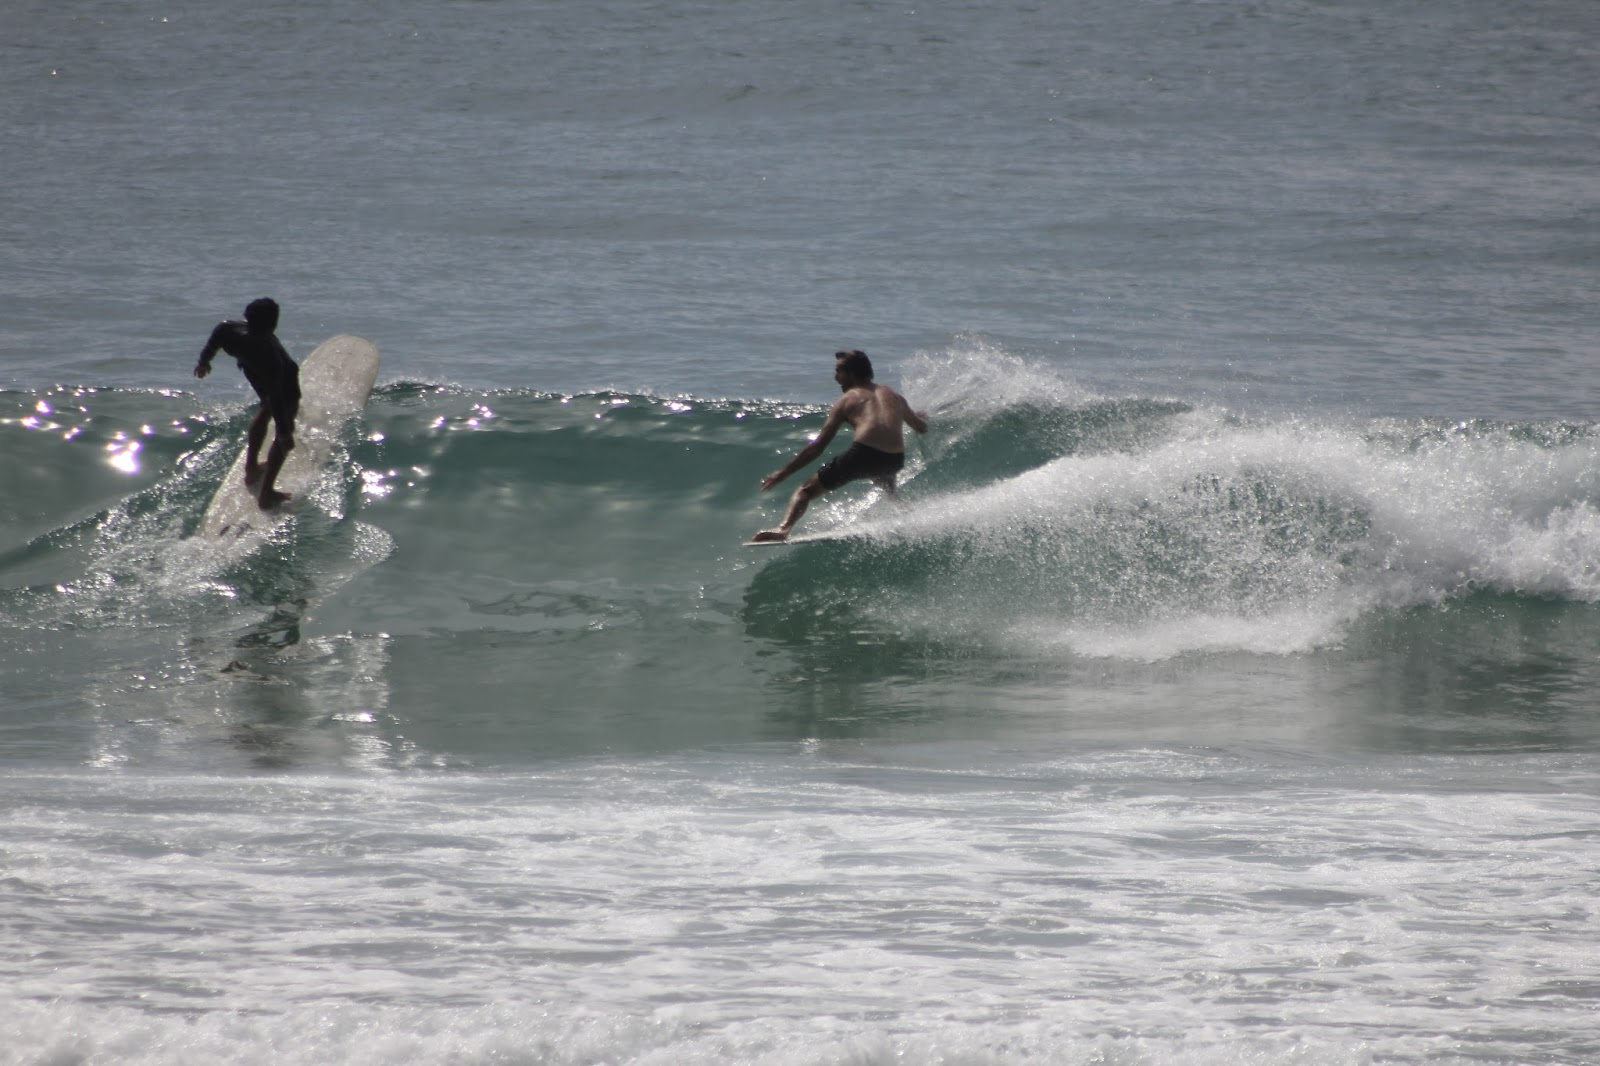 11-03-2016-australia-siebert-surfboards-10